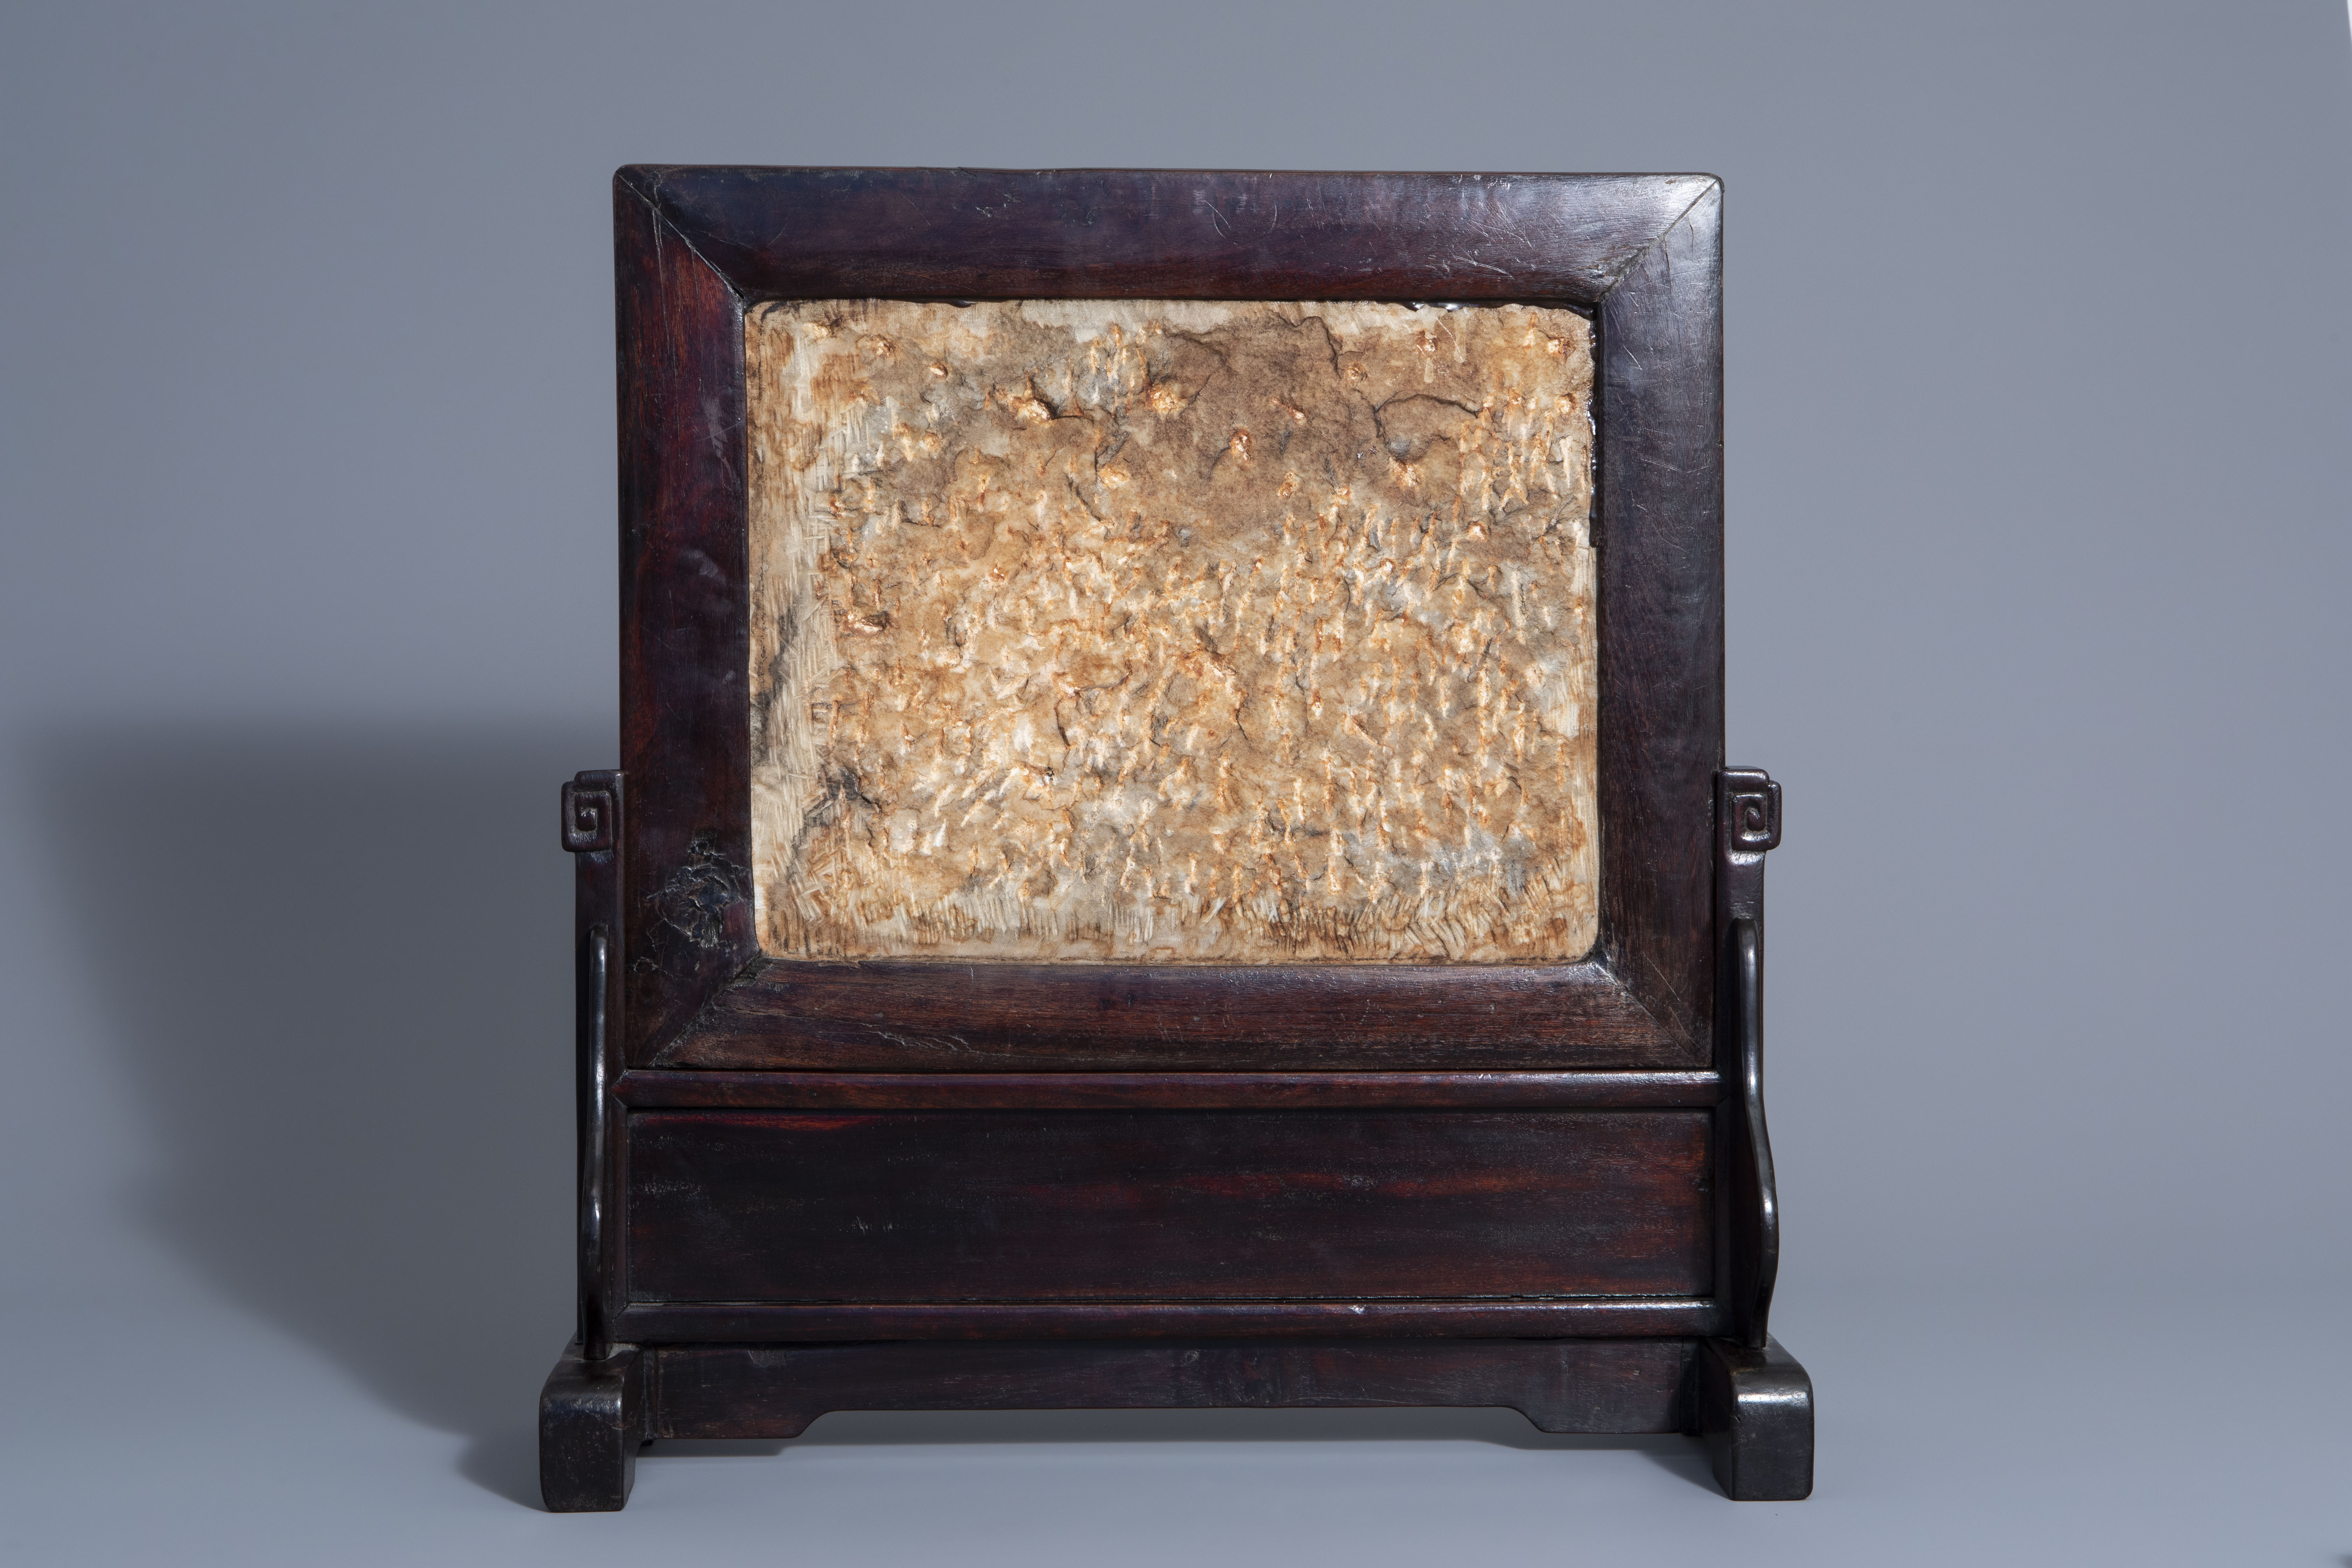 A Chinese wooden 'dream stone' table screen, 19th/20th C. - Image 3 of 4